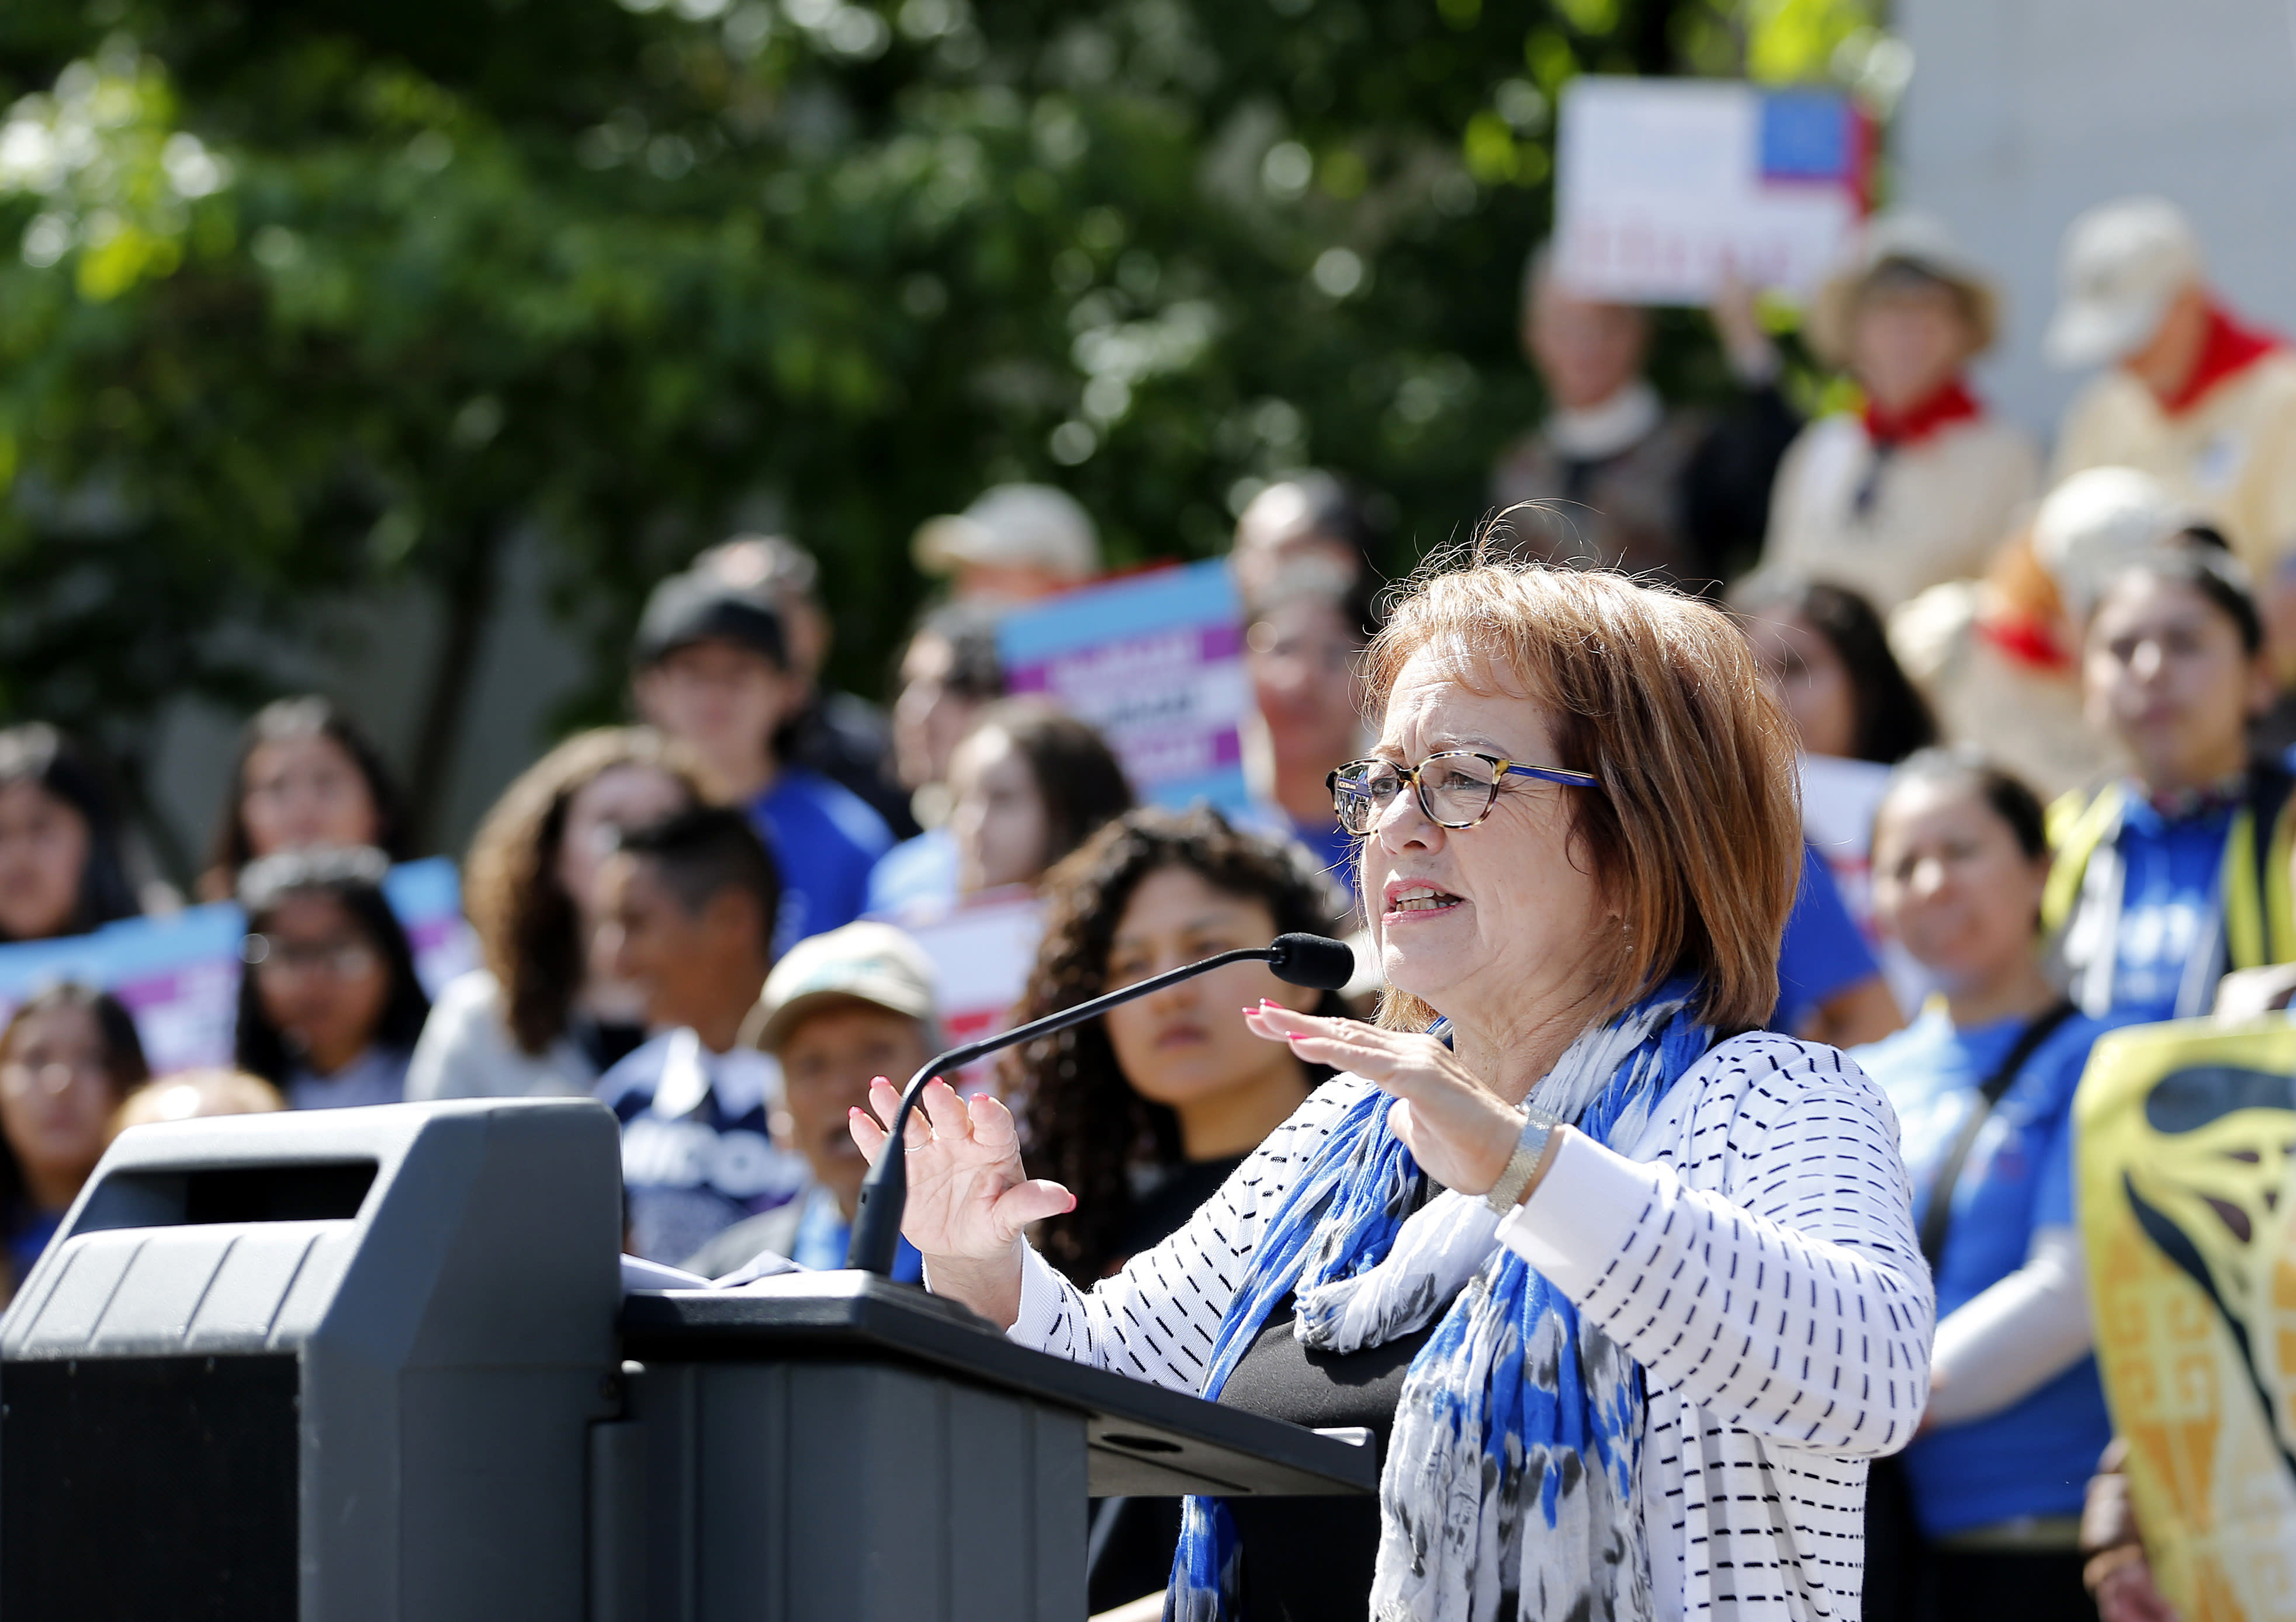 State Sen. Maria Elena Durazo, D-Los Angeles, addresses a gathering at the Immigrants Day of Action rally, Monday, May 20, 2019, in Sacramento, Calif. Gov. Gavin Newsom has proposed offering government-funded health care benefits to immigrant adults ages 19 to 25 who are living in the country illegally. Durazo, has proposed a bill to expand that further to include seniors age 65 and older. (AP Photo/Rich Pedroncelli)